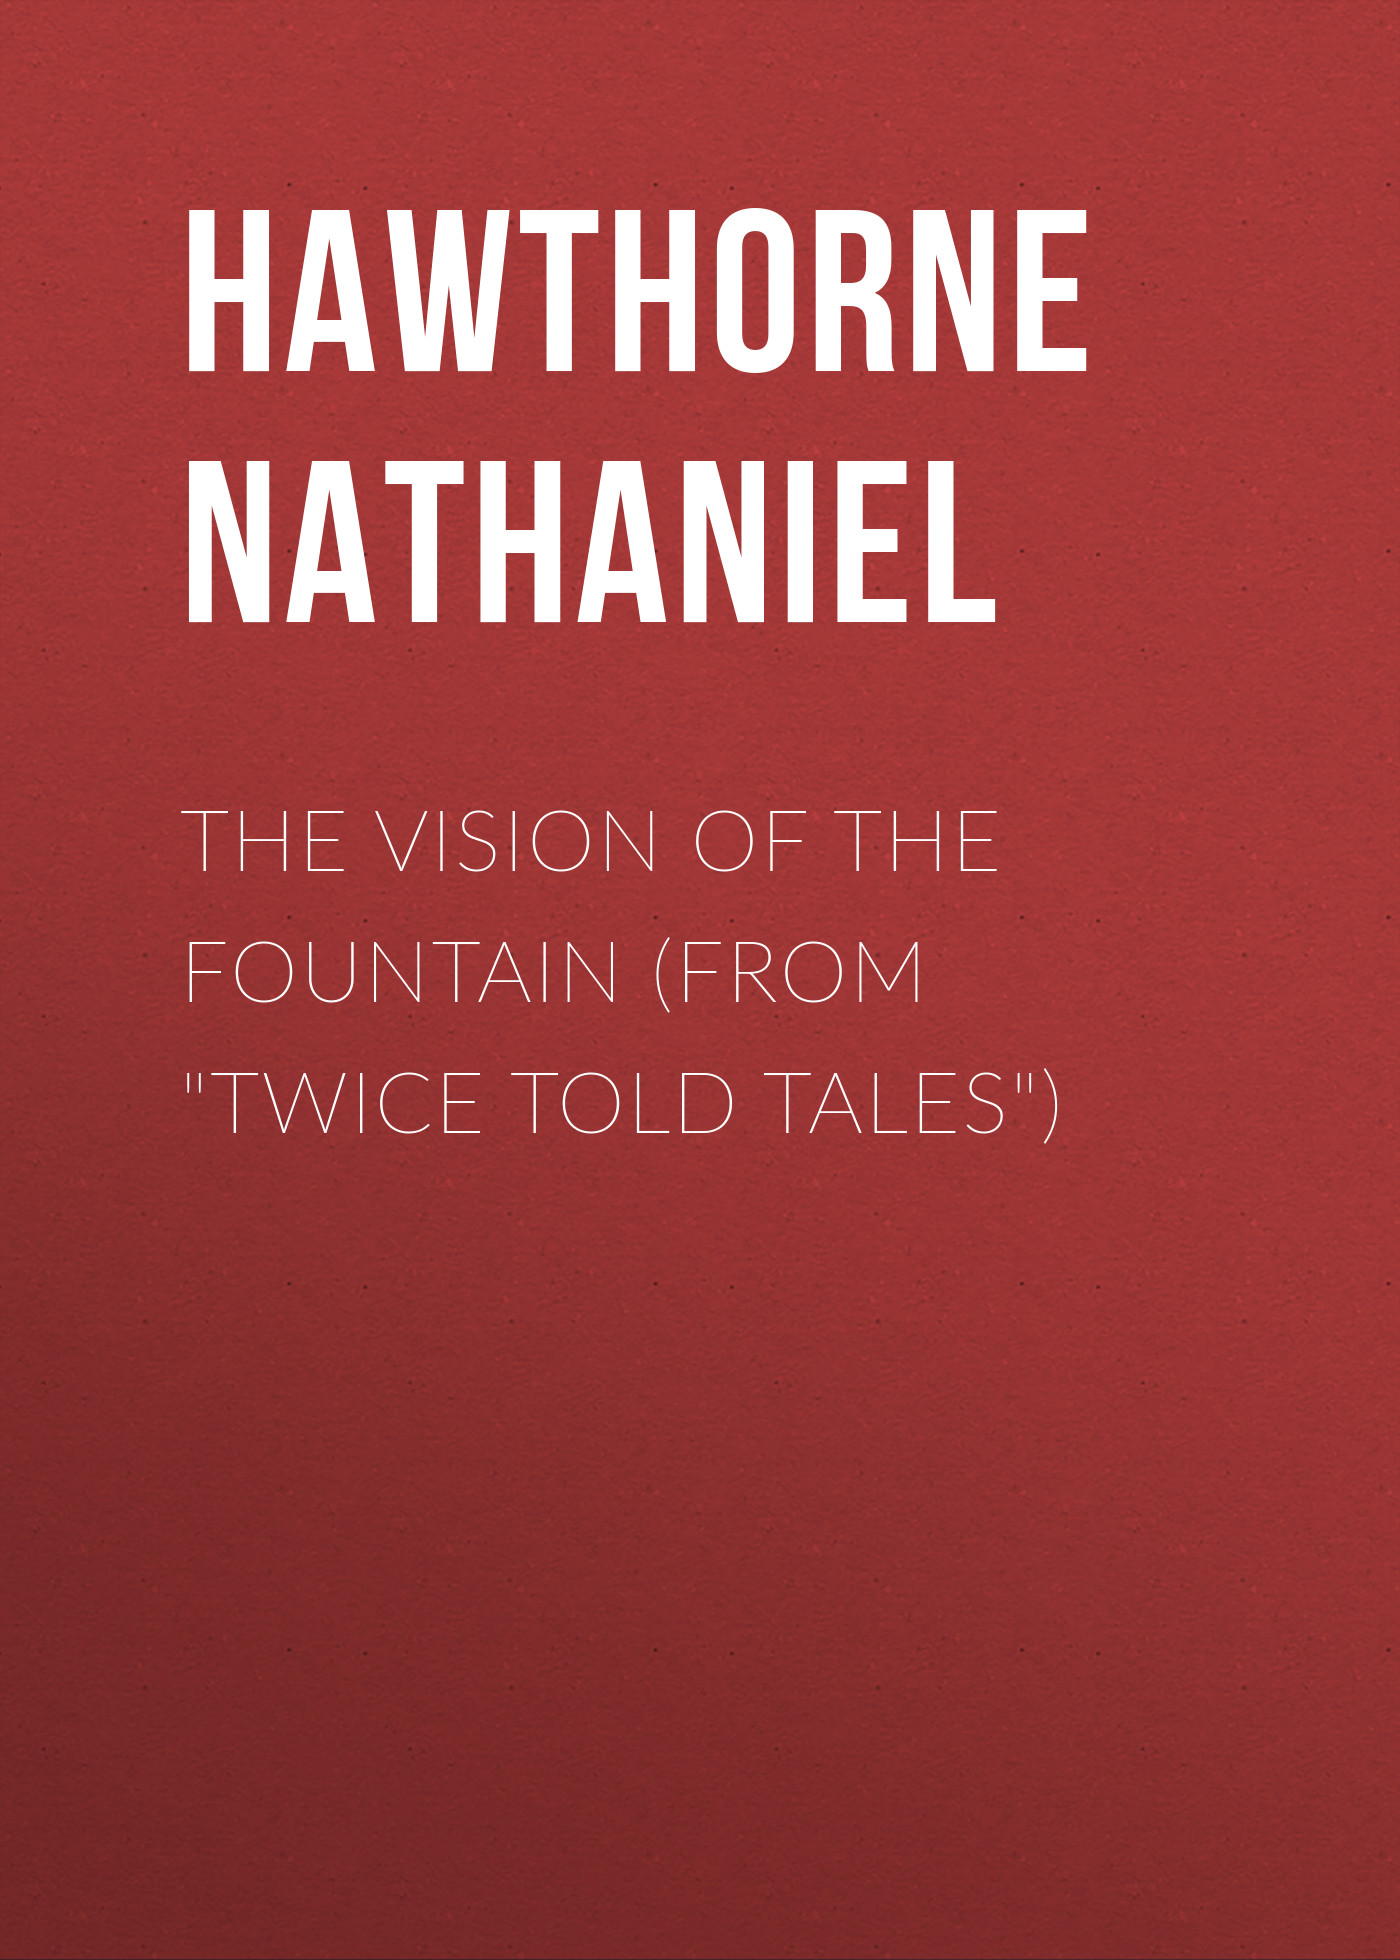 Hawthorne Nathaniel The Vision of the Fountain (From Twice Told Tales) hawthorne nathaniel the threefold destiny from twice told tales